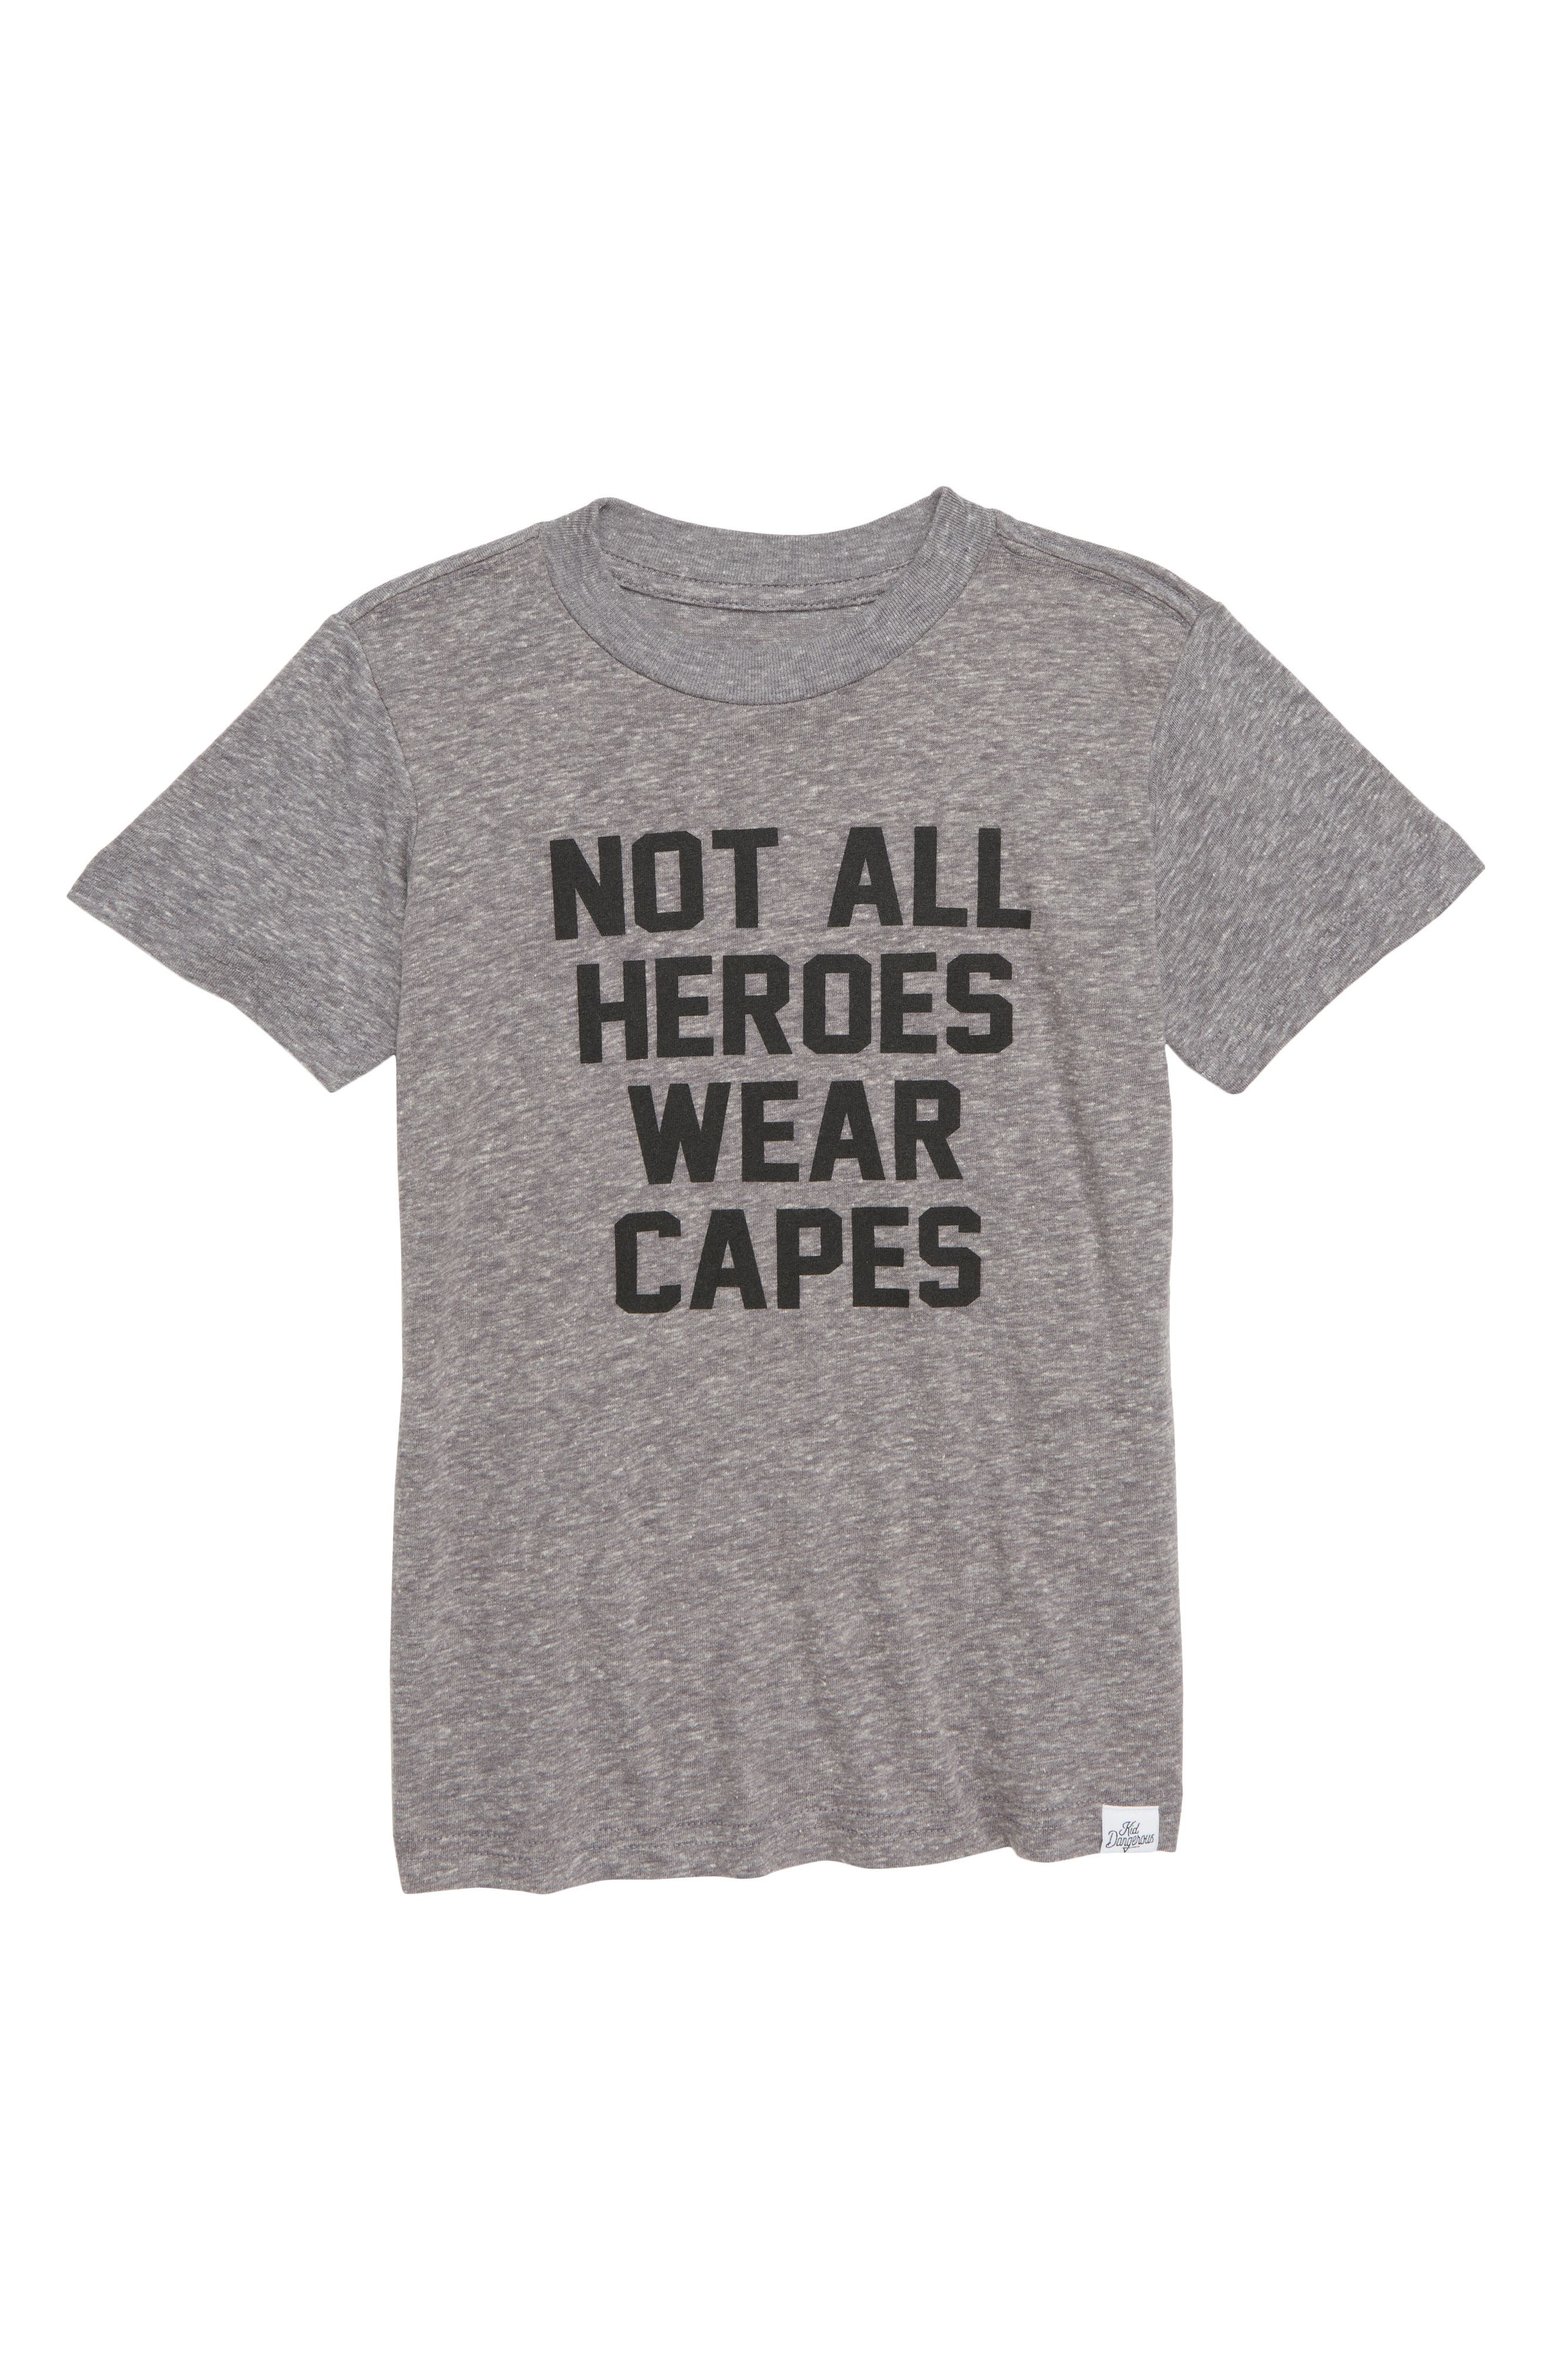 Not All Heroes Wear Capes Graphic T-Shirt,                             Main thumbnail 1, color,                             Med Gray